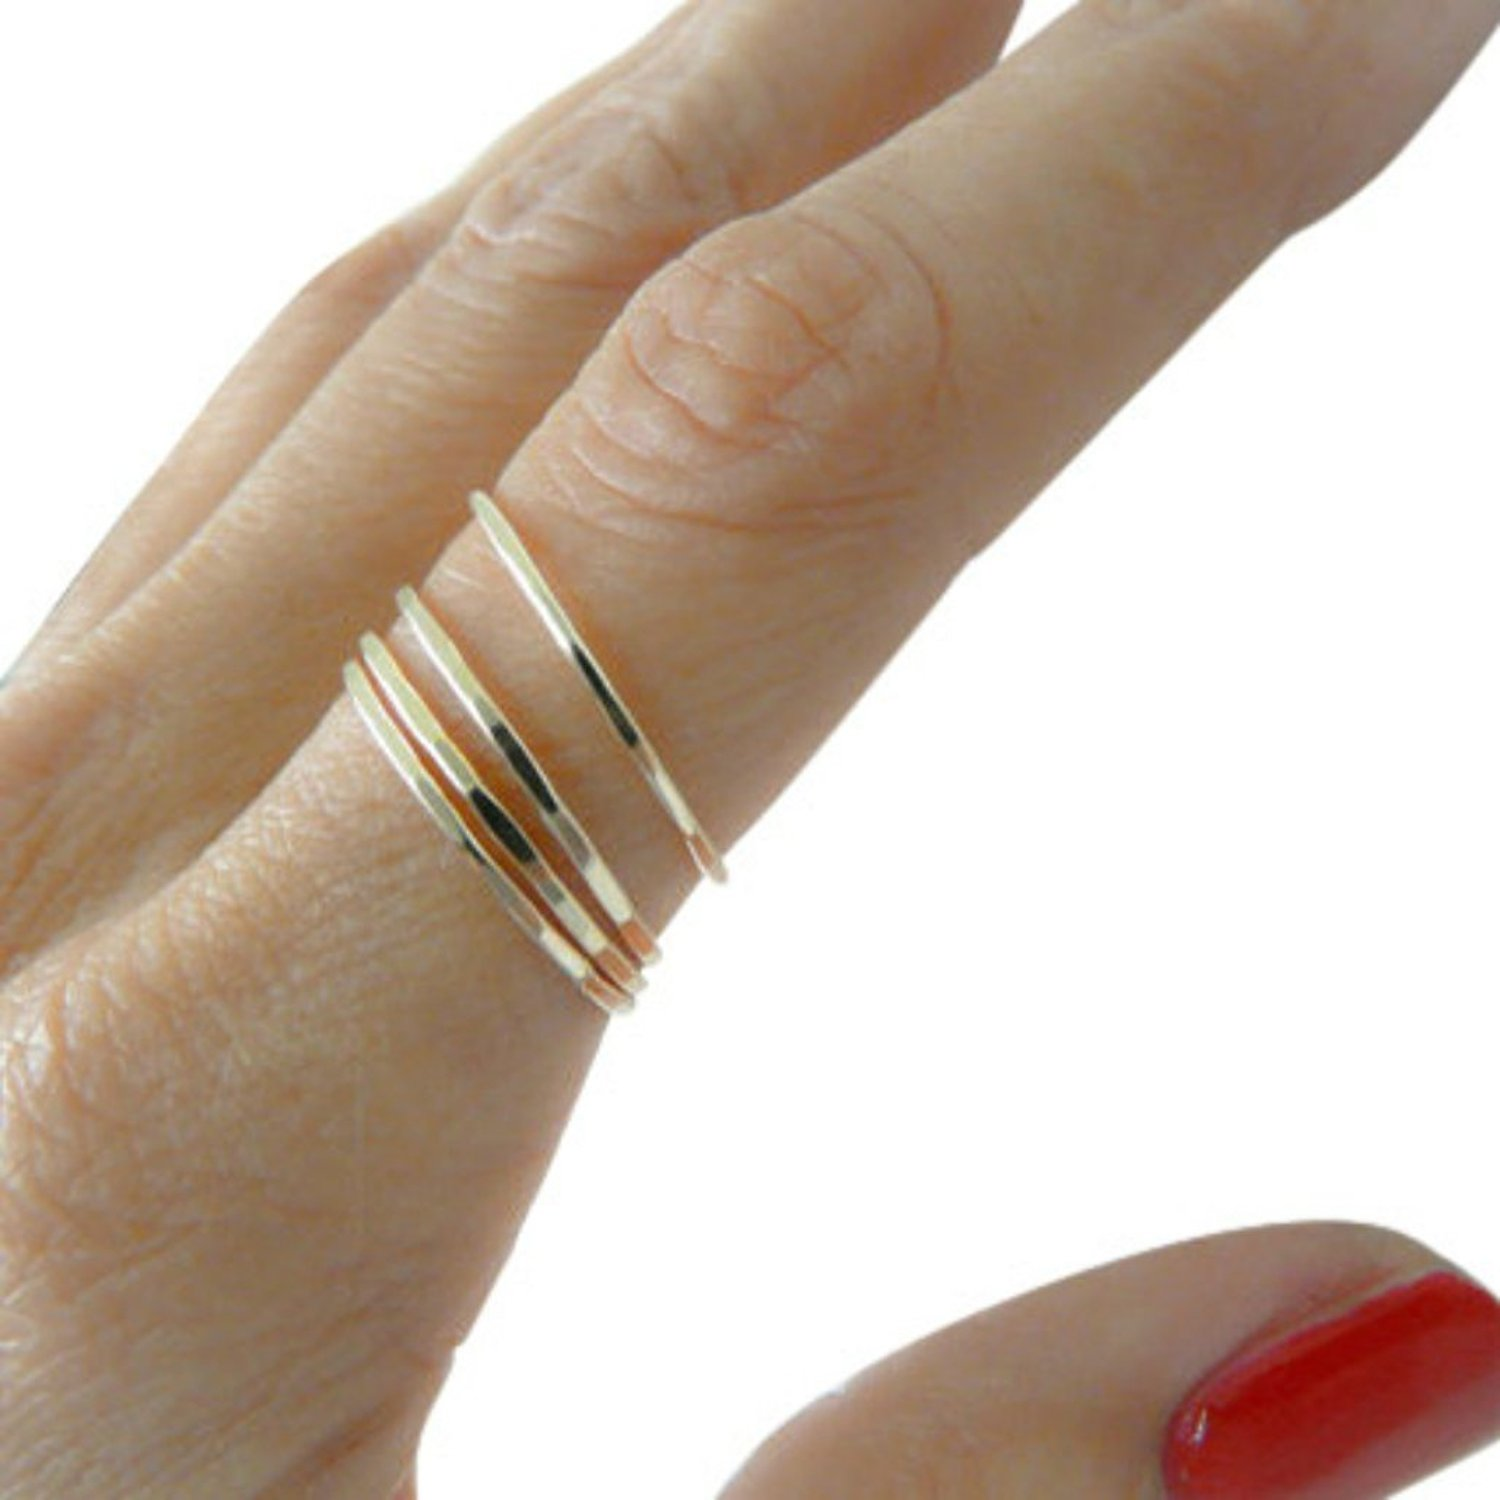 0883ce6a88aa5 Cheap Thin Thumb Rings, find Thin Thumb Rings deals on line at ...